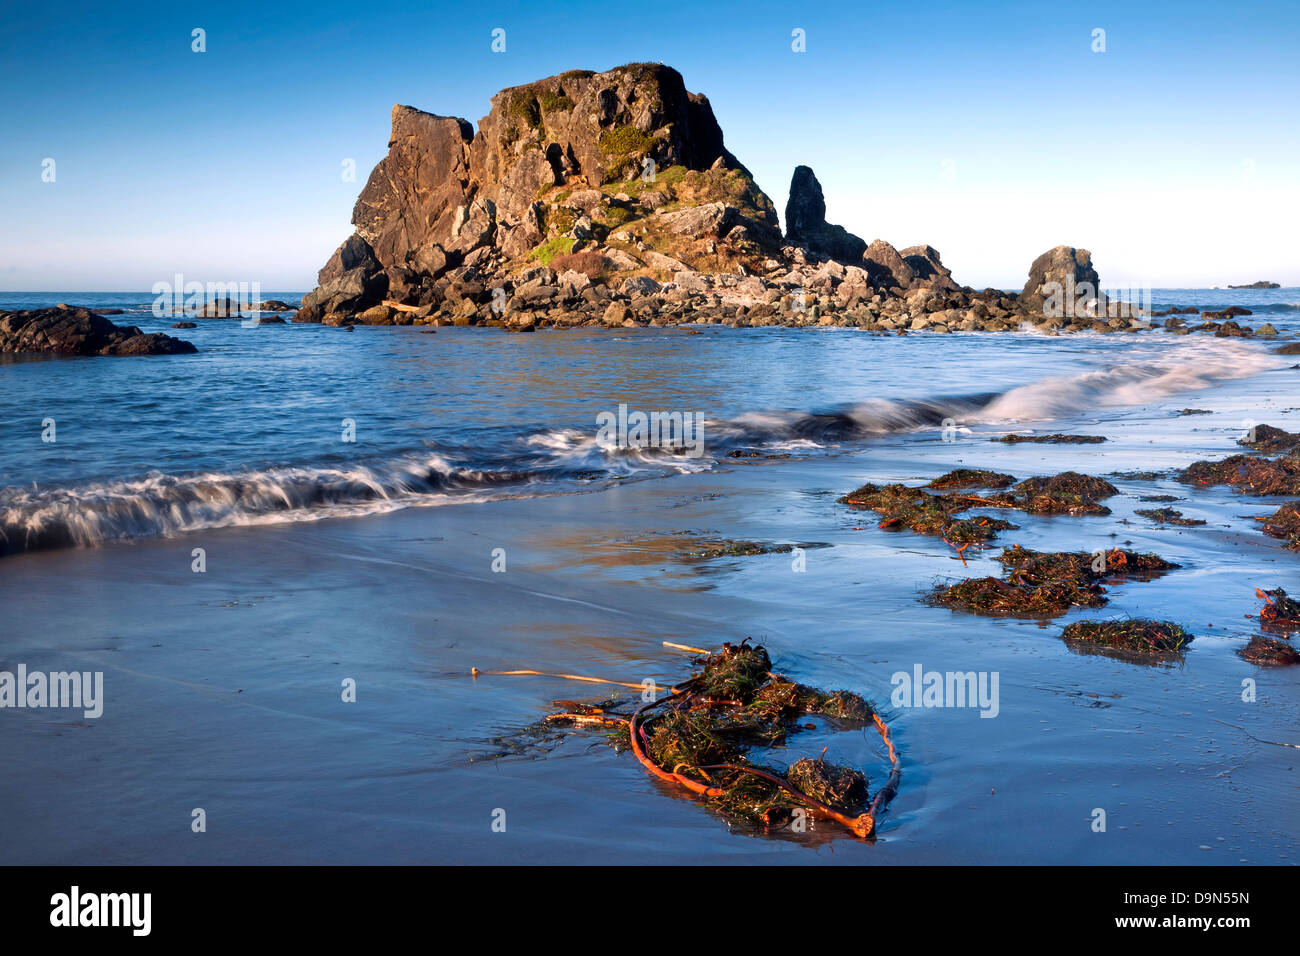 OR01086-00...OREGON - Seaweed and kelp on Rock Beach at the edge of the Pacific Ocean in Harris Beach State Recreation - Stock Image